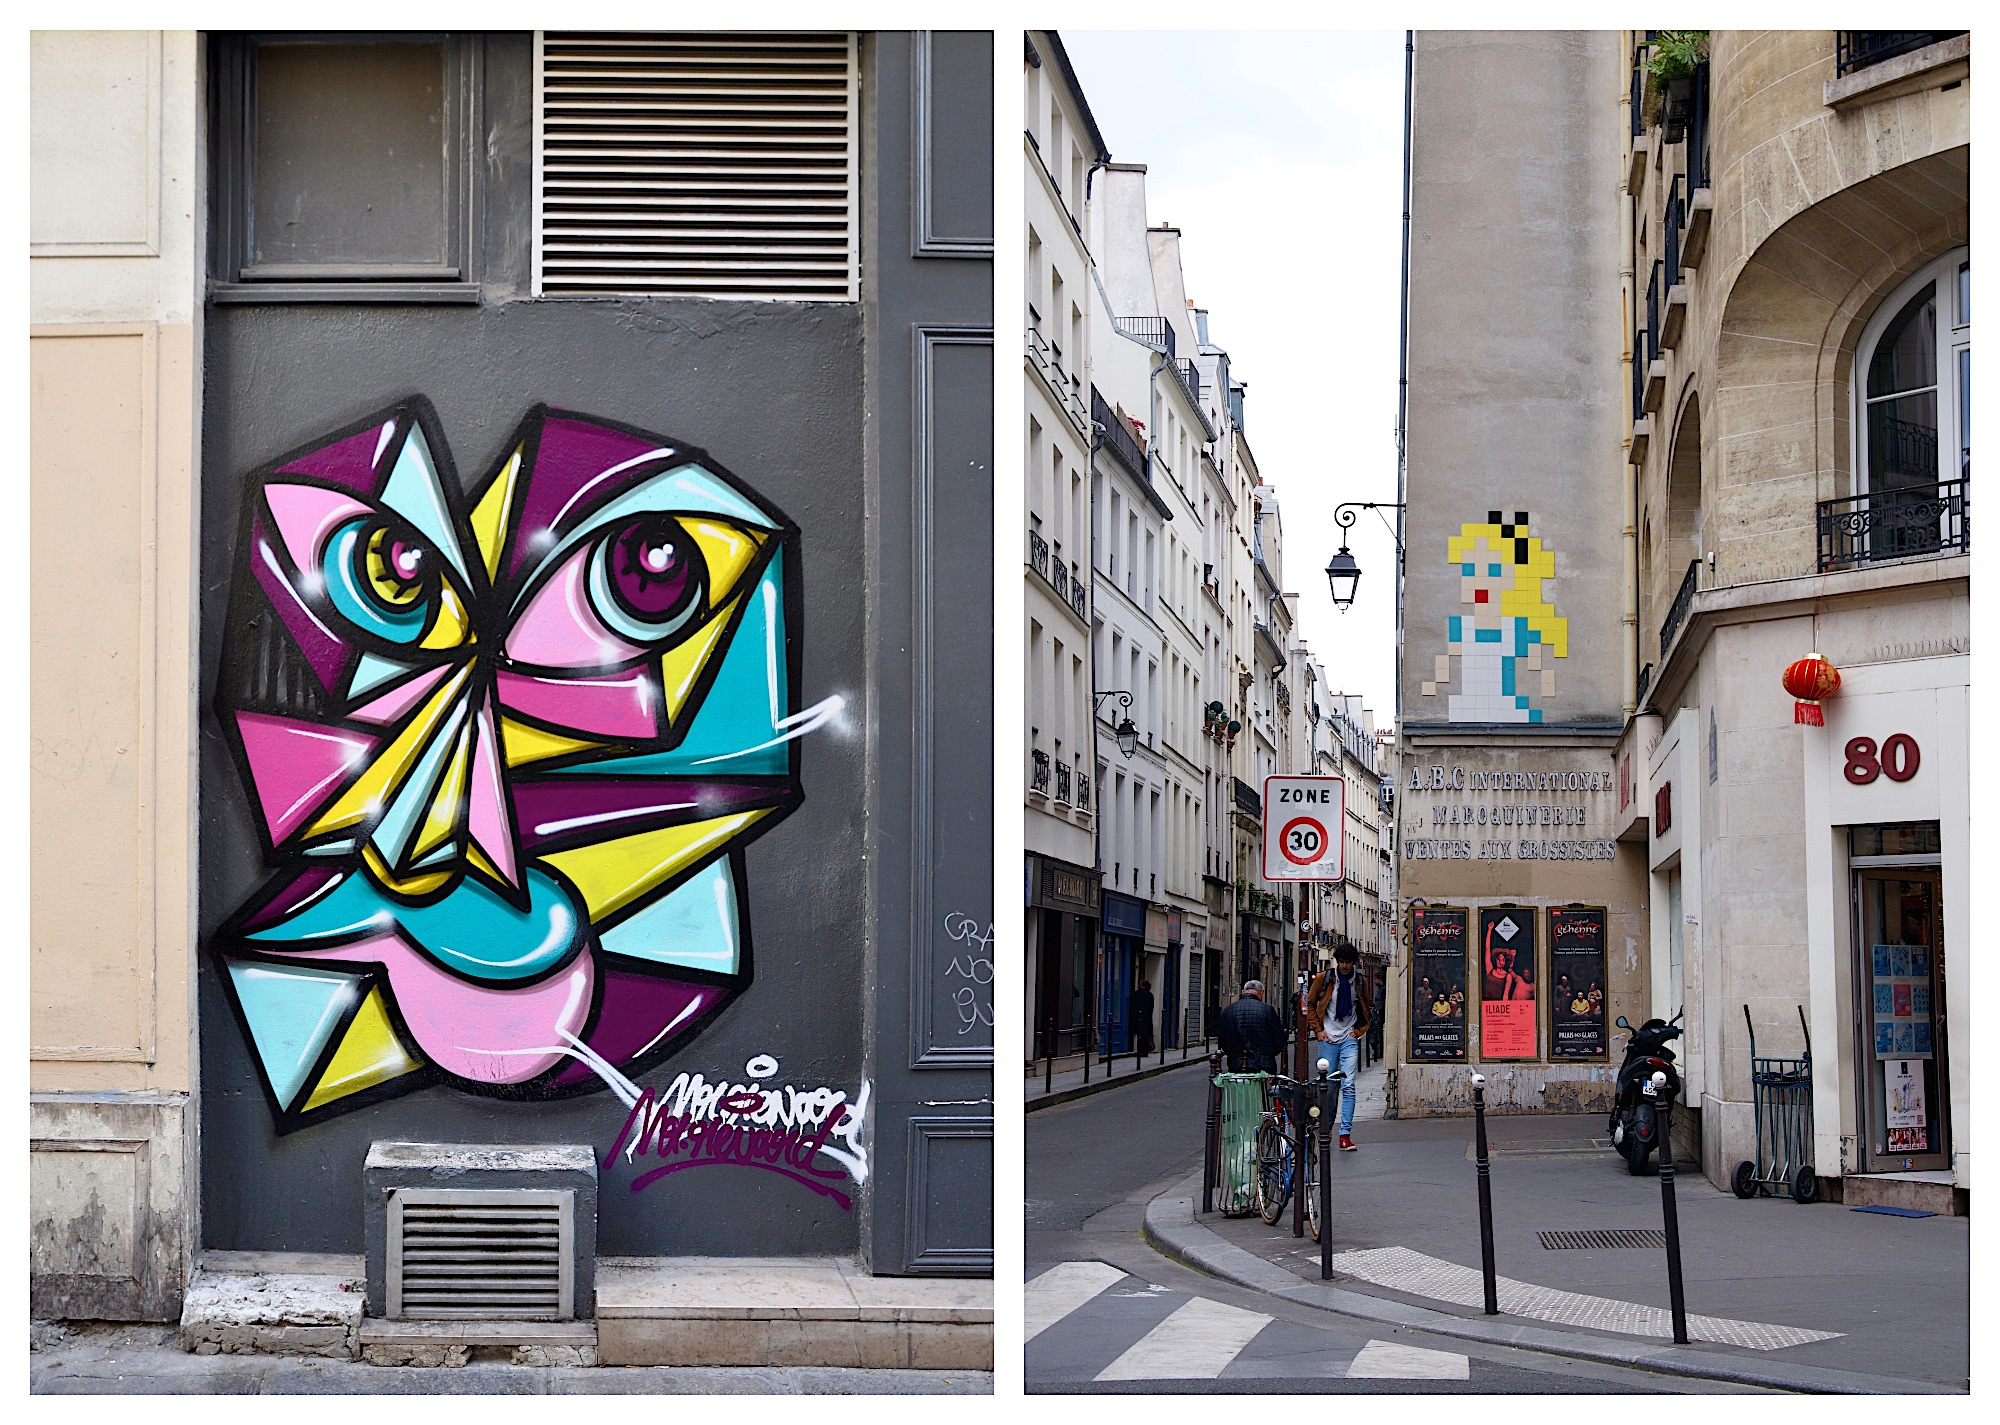 Street art in Paris is everywhere. See Clet Abraham's colorful pieces (left) and Invader mosaics (right).